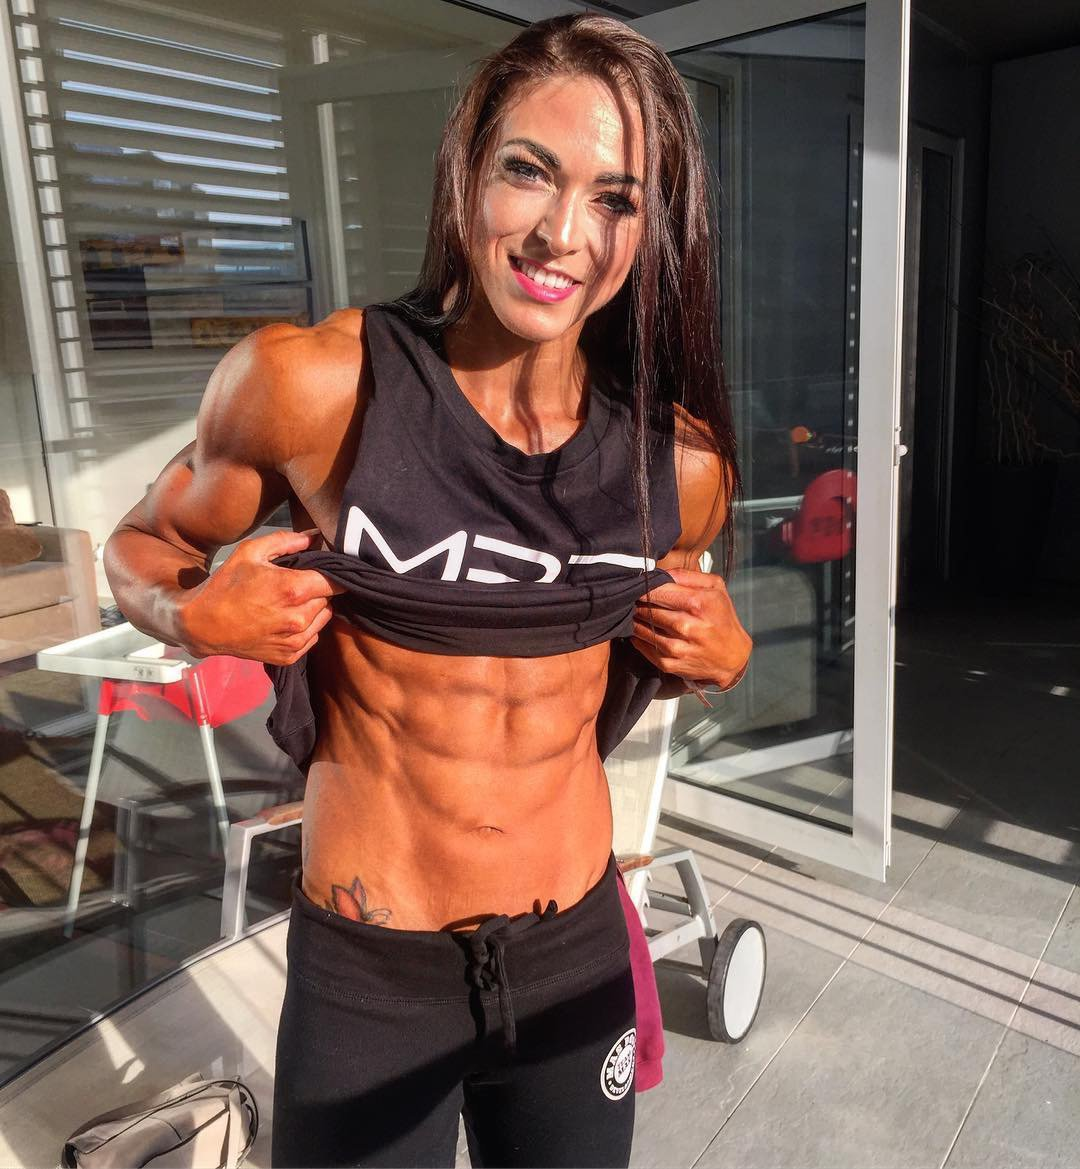 Nude girls with muscle